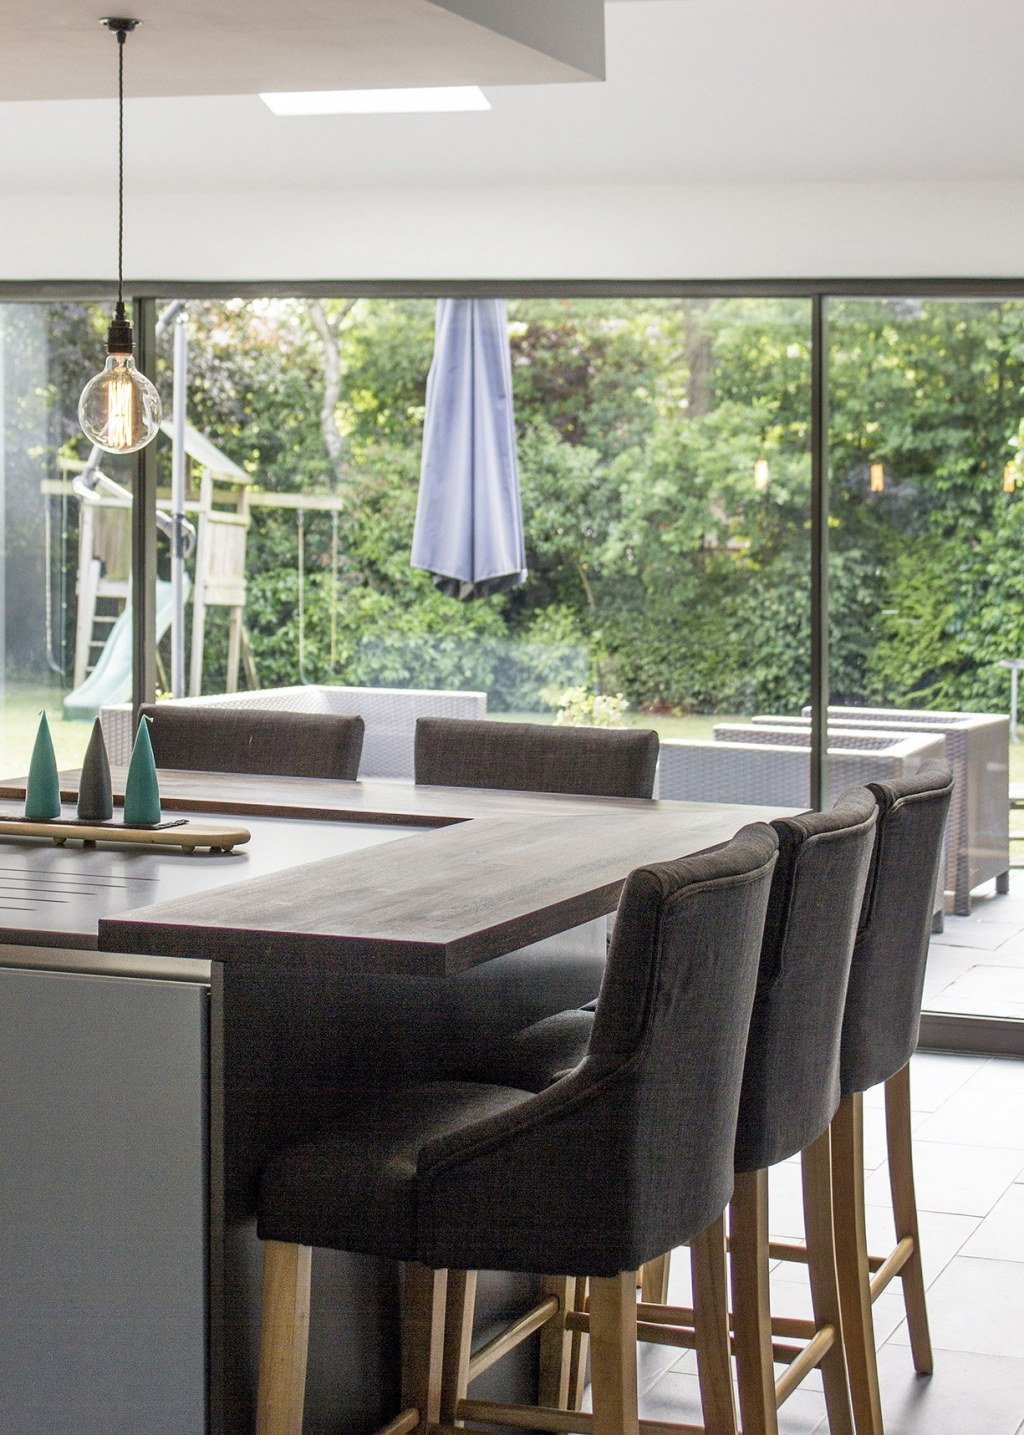 CAMBERLEY EXTENSION / Camberley Extension Kitchen Details